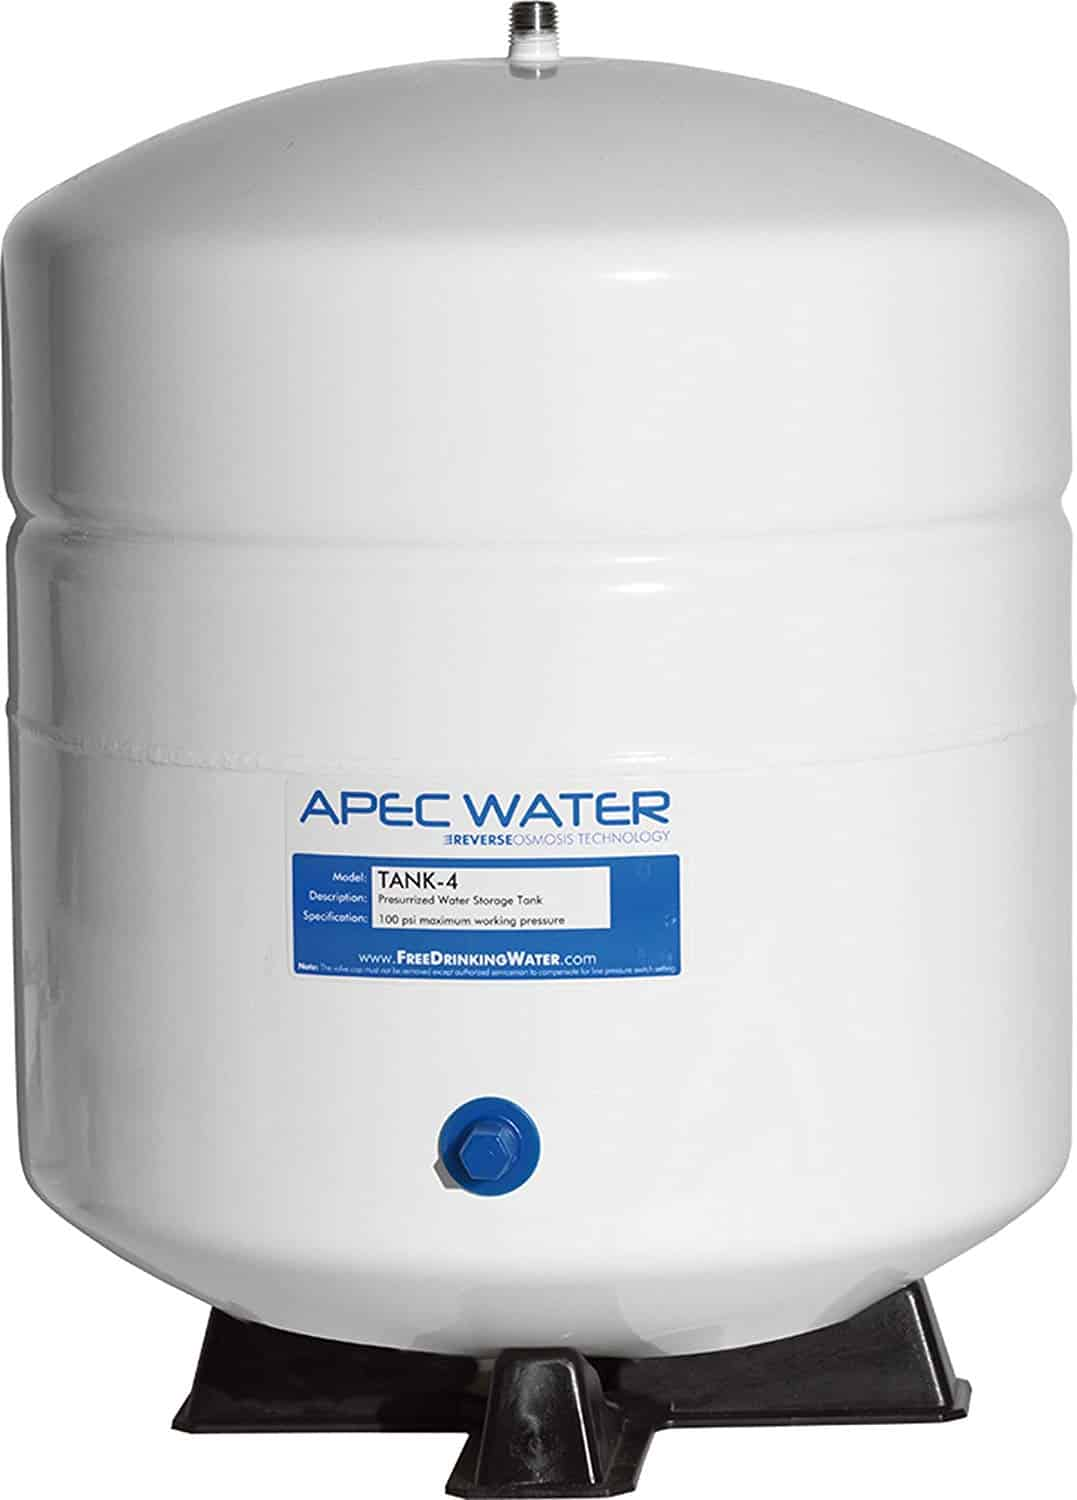 Residential Pre-Pressurized Reverse Osmosis Water Storage Tank